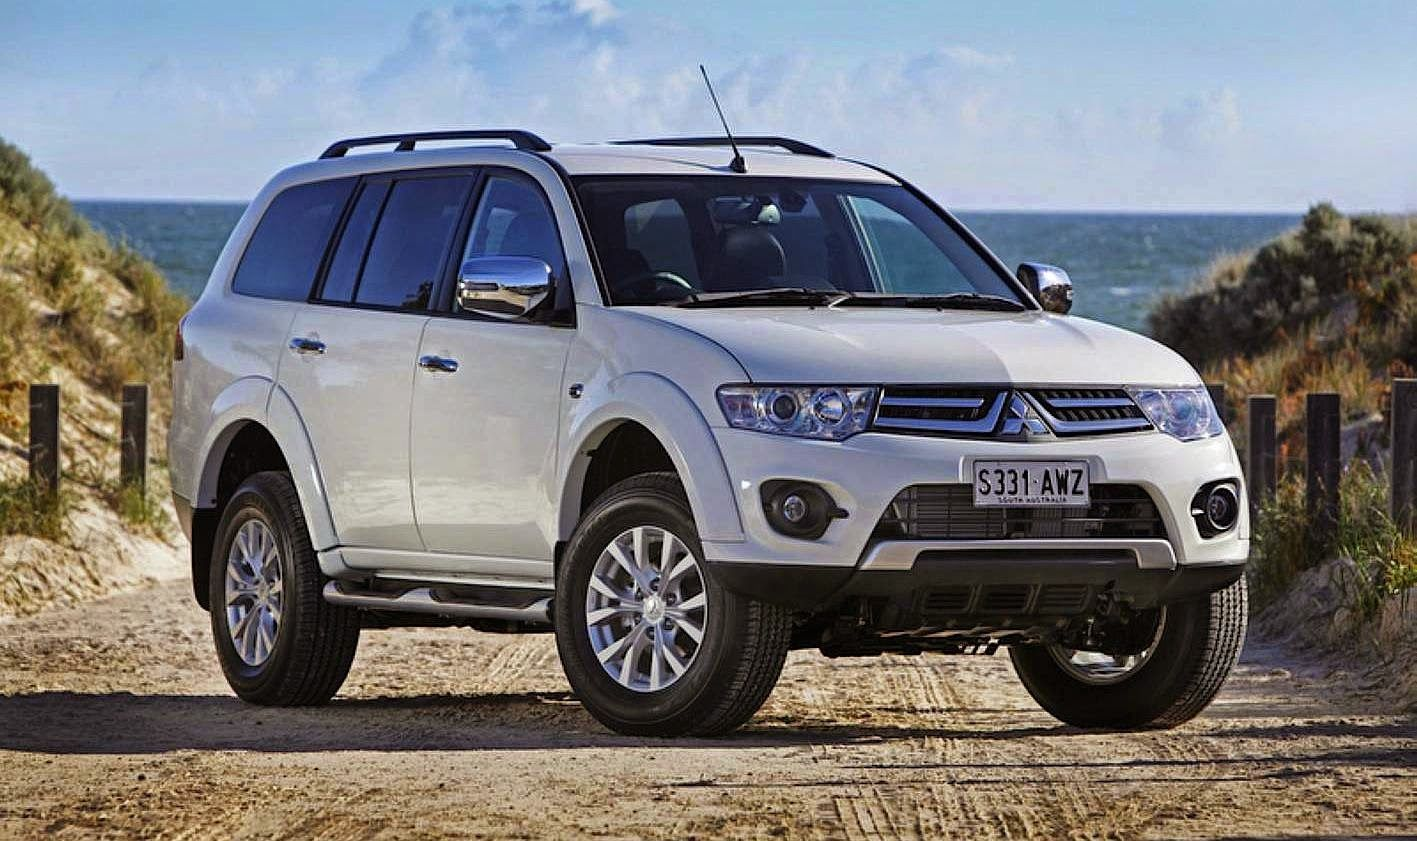 Captivating Mitsubishi Pajero